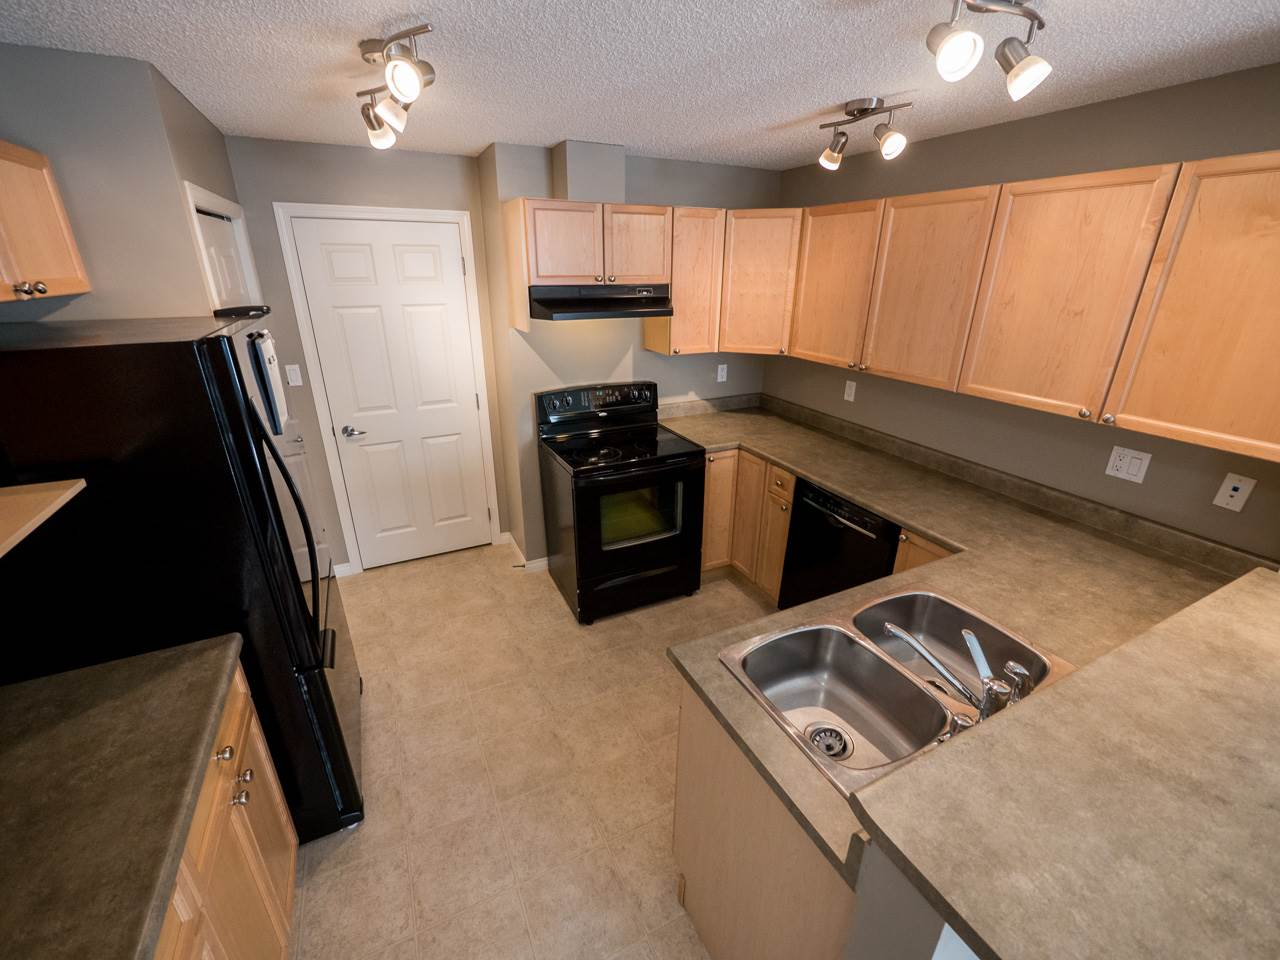 Photo 3: 71 3040 SPENCE Way in Edmonton: Zone 53 Townhouse for sale : MLS(r) # E4063695